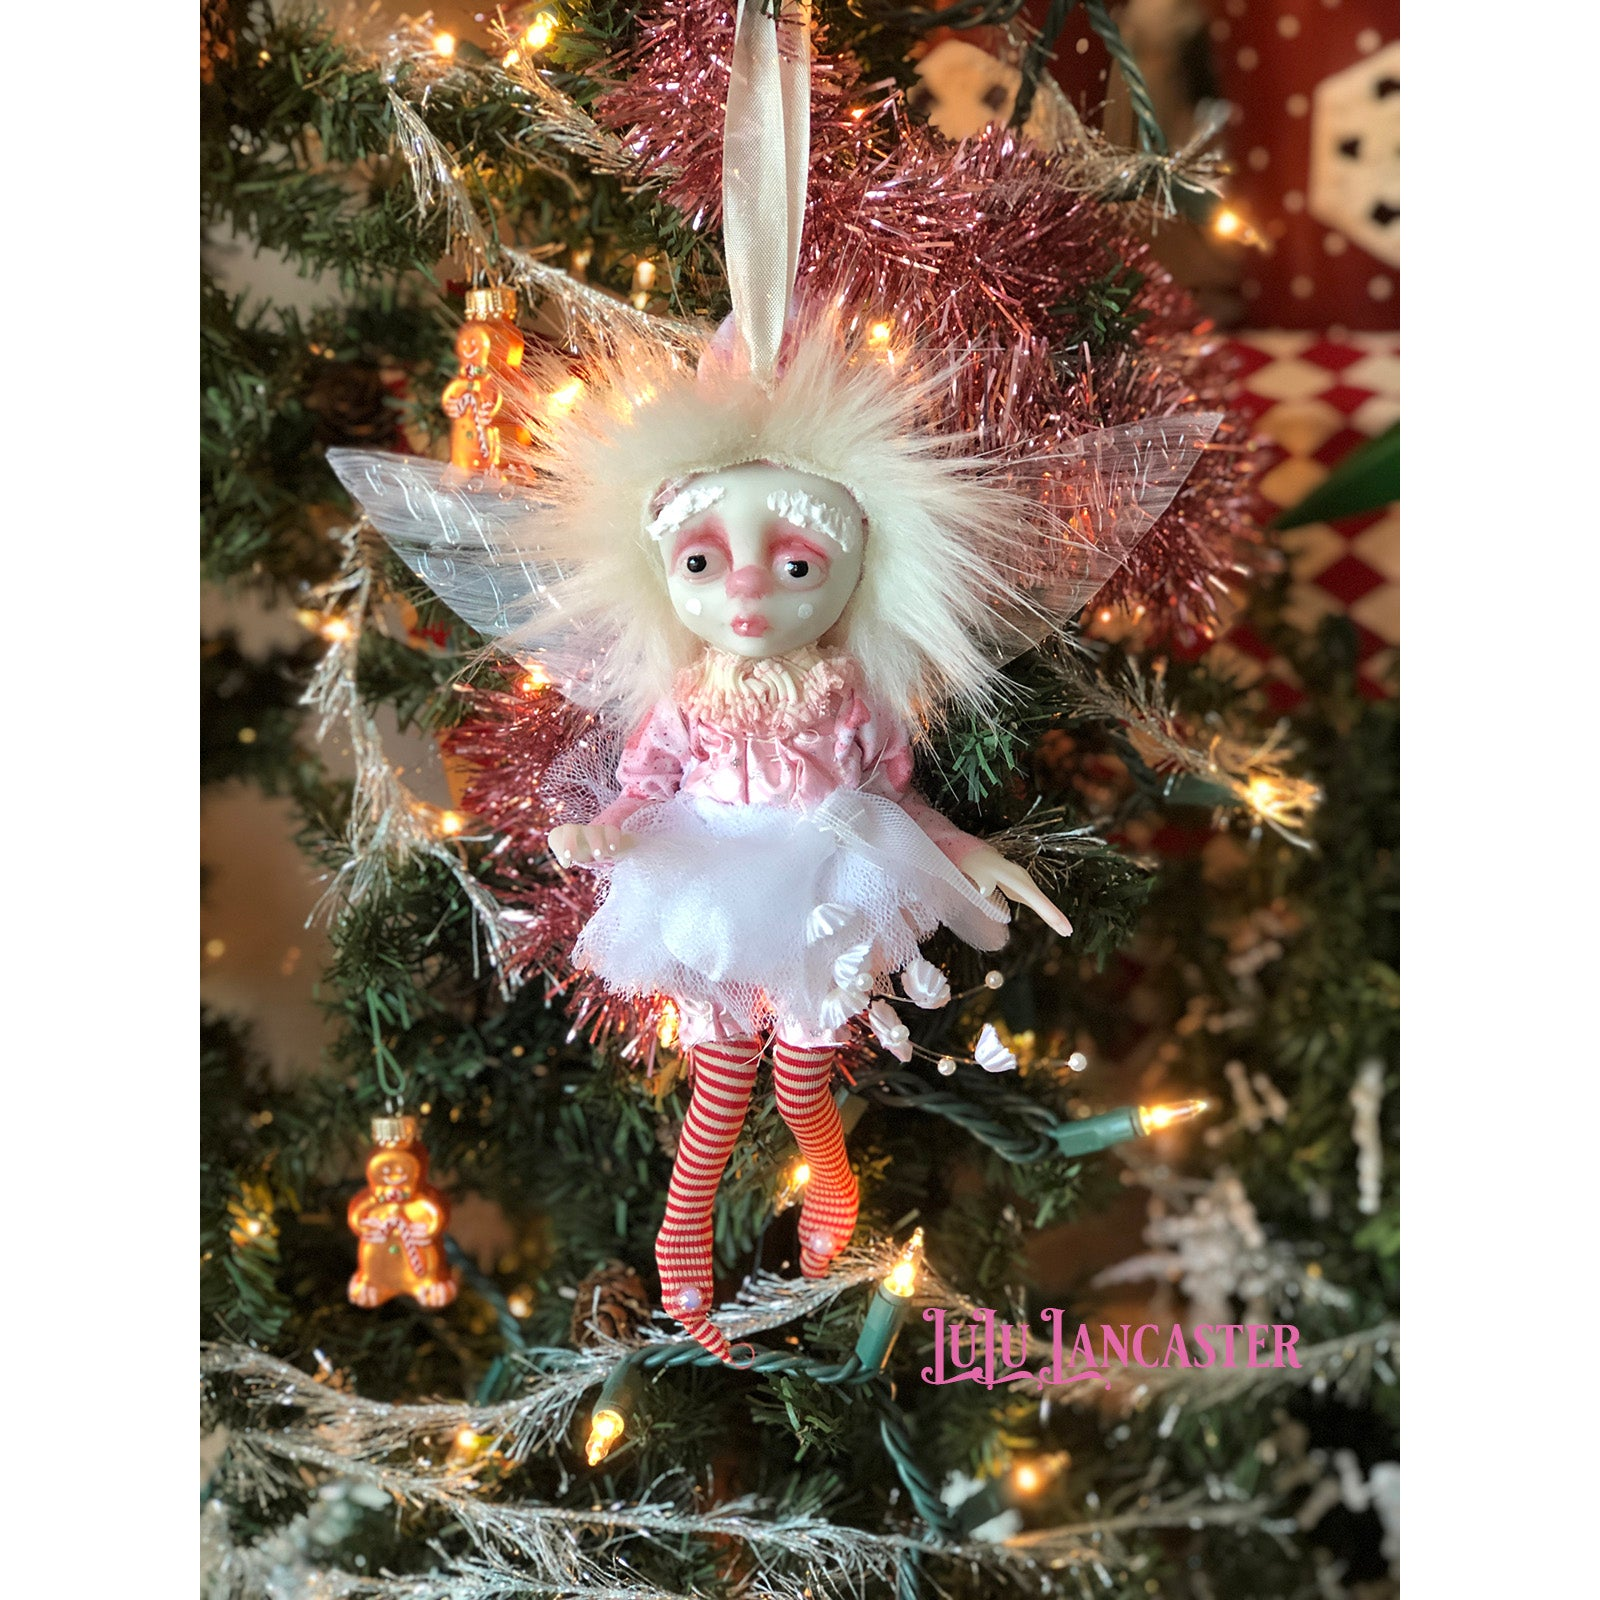 LiL SugarPlum Fairy Ornament OOAK Art Doll LuLu Lancaster